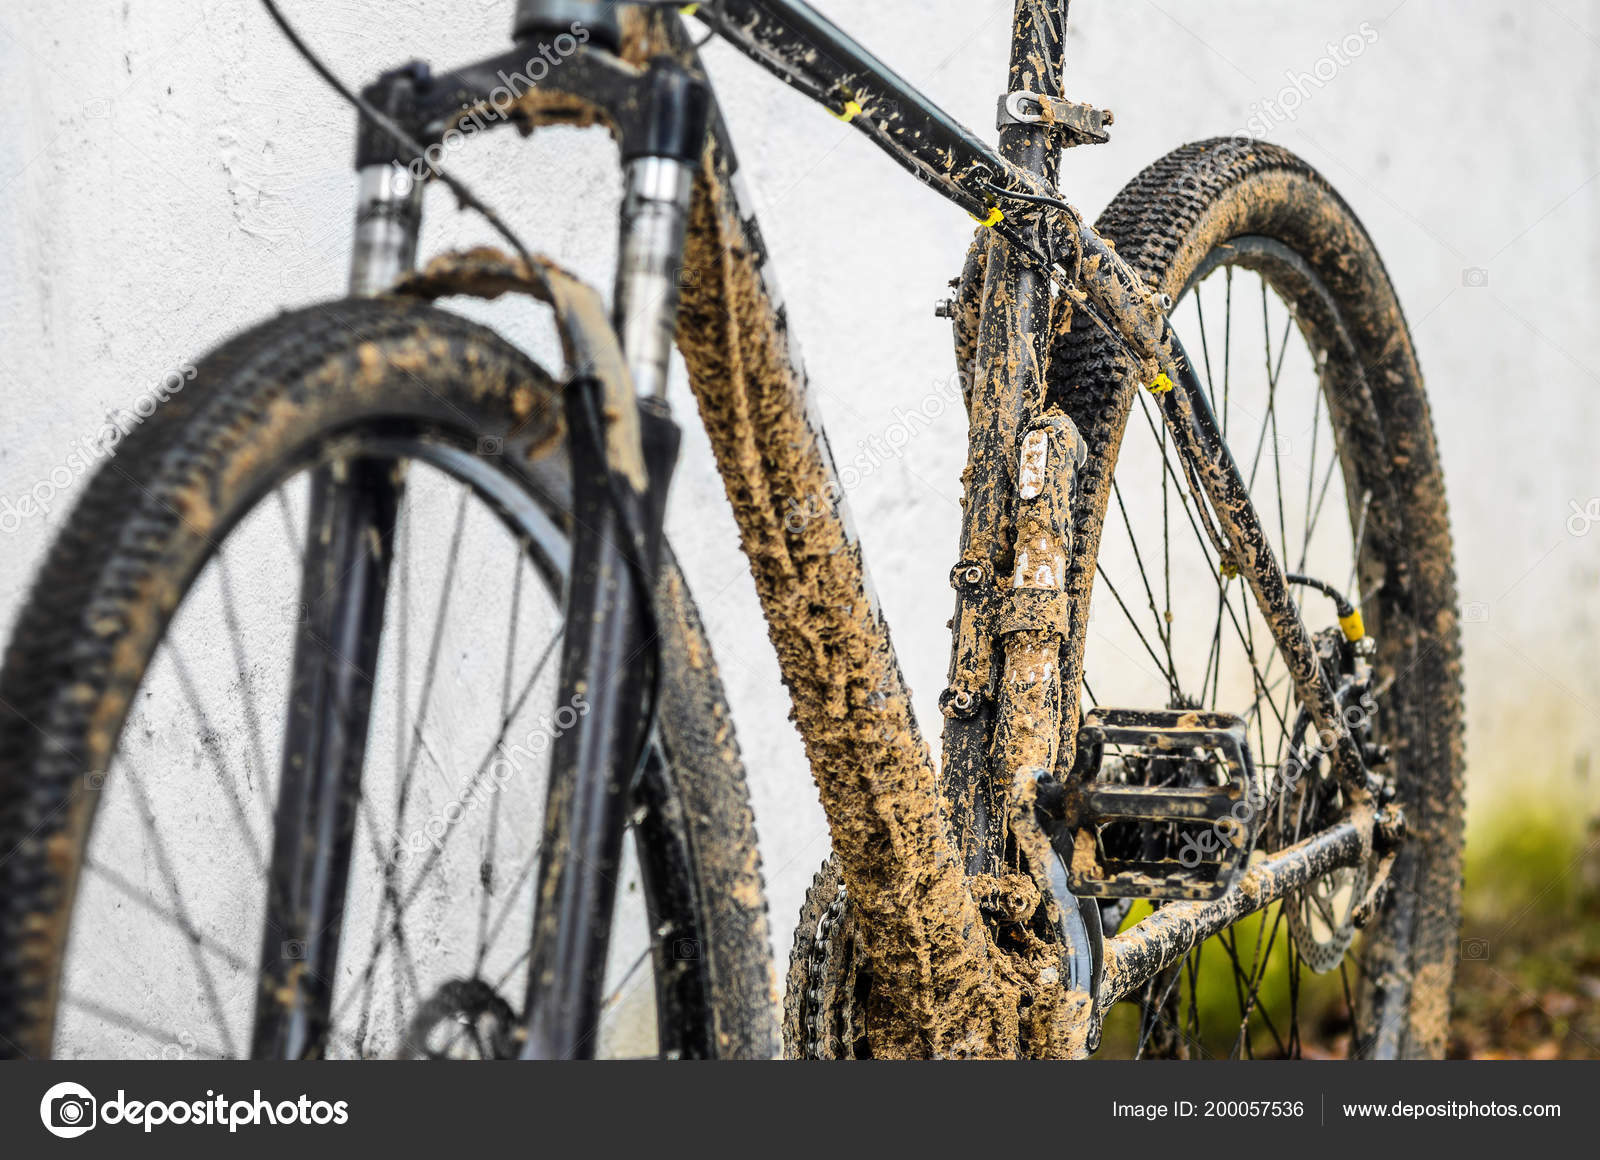 Dirty Bicycle Suspension Fork Riding Bad Weather Dirt Oil